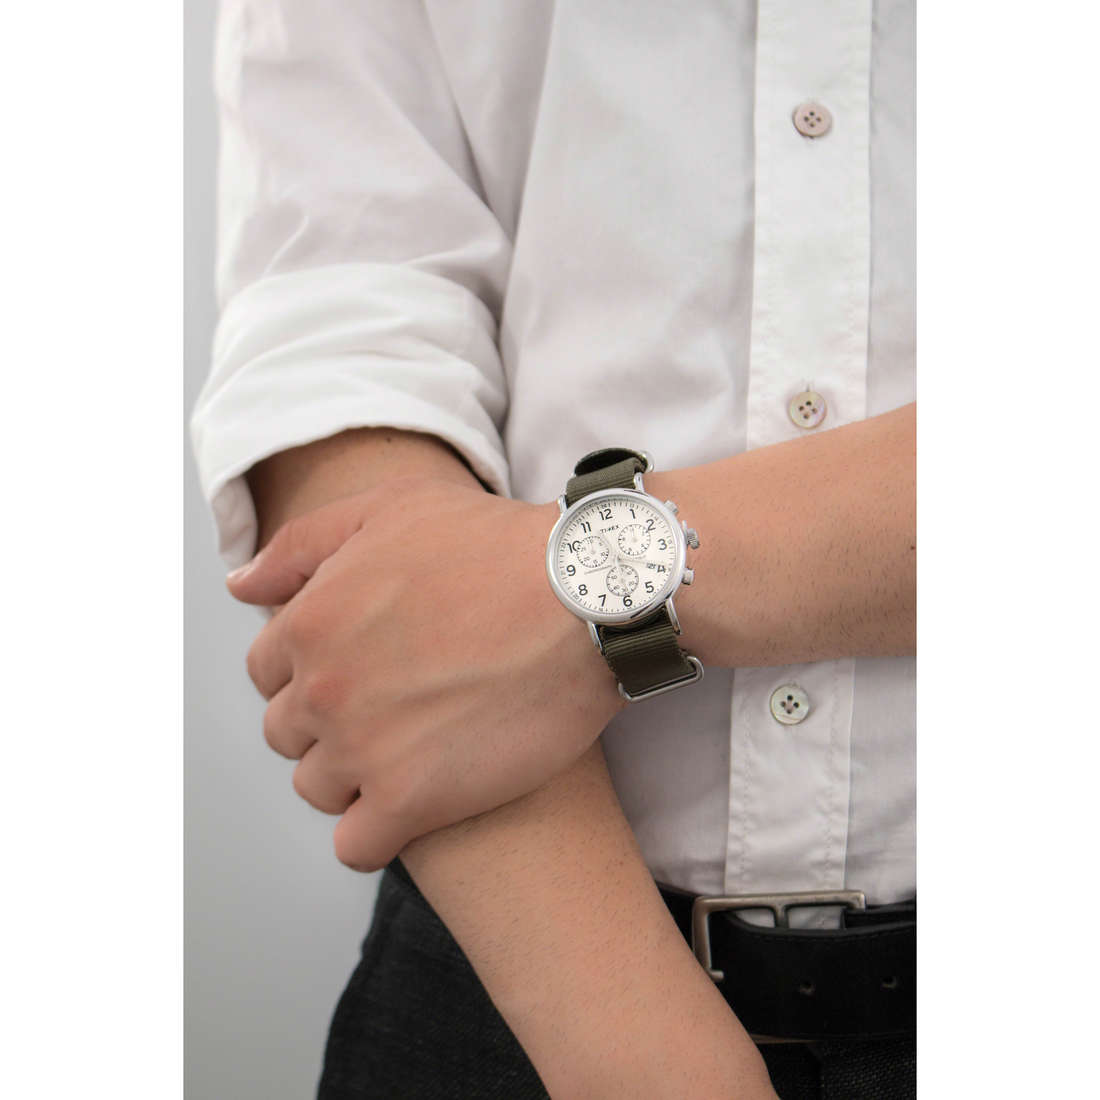 Timex chronographes Weekender homme TW2P71400 indosso